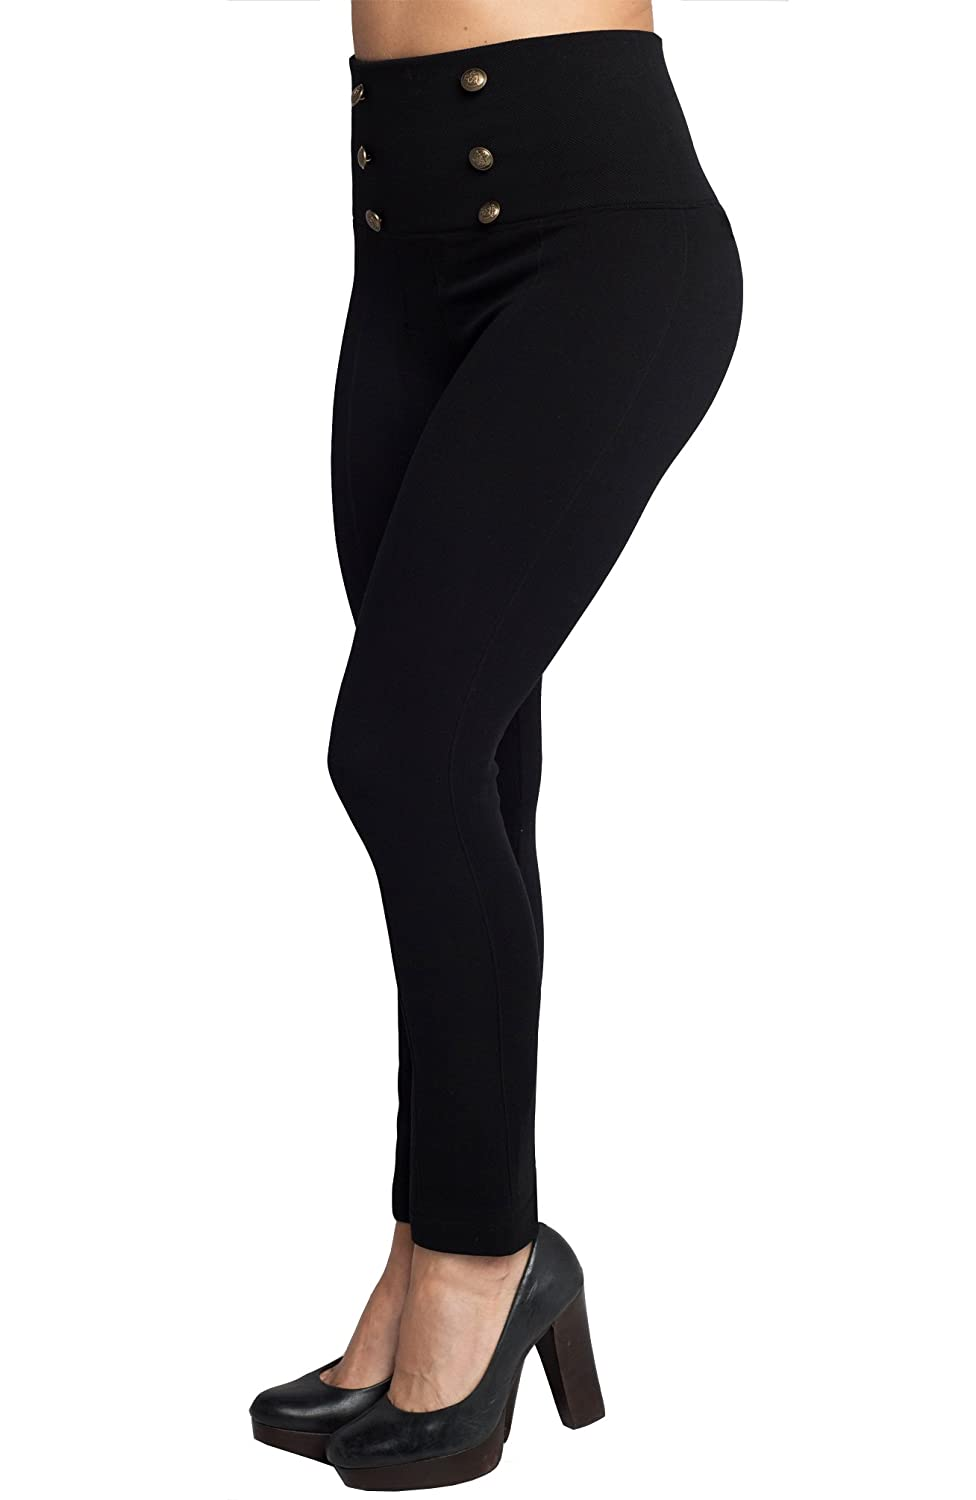 Hollywood Pants Fleece Lined Leggings Women, High Waist Leggings, Button Fits Size 6-10 (L)